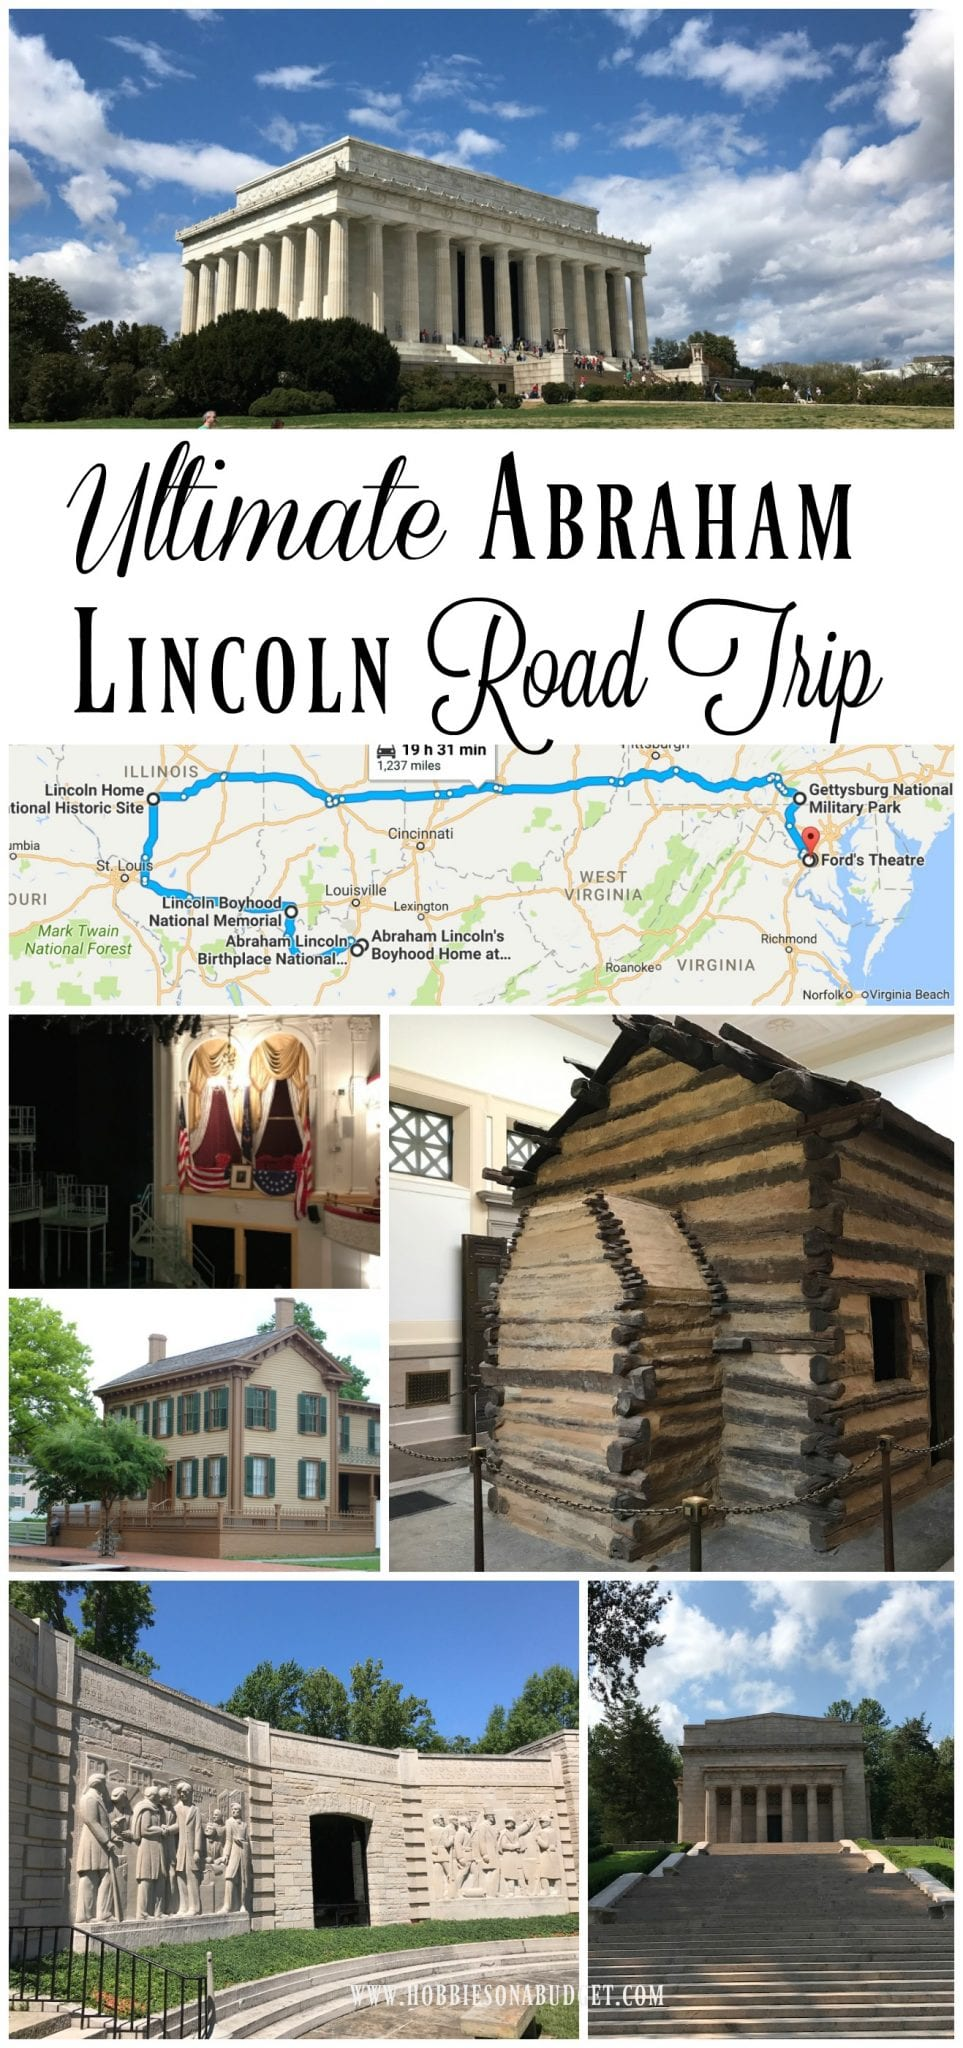 If you are interested in learning about our 16th President, Abraham Lincoln, then you need to actually go to the historic sites that have connections to this President. Here is the ultimate Abraham Lincoln road trip that will let you see the highlights of historical sites around the United States.